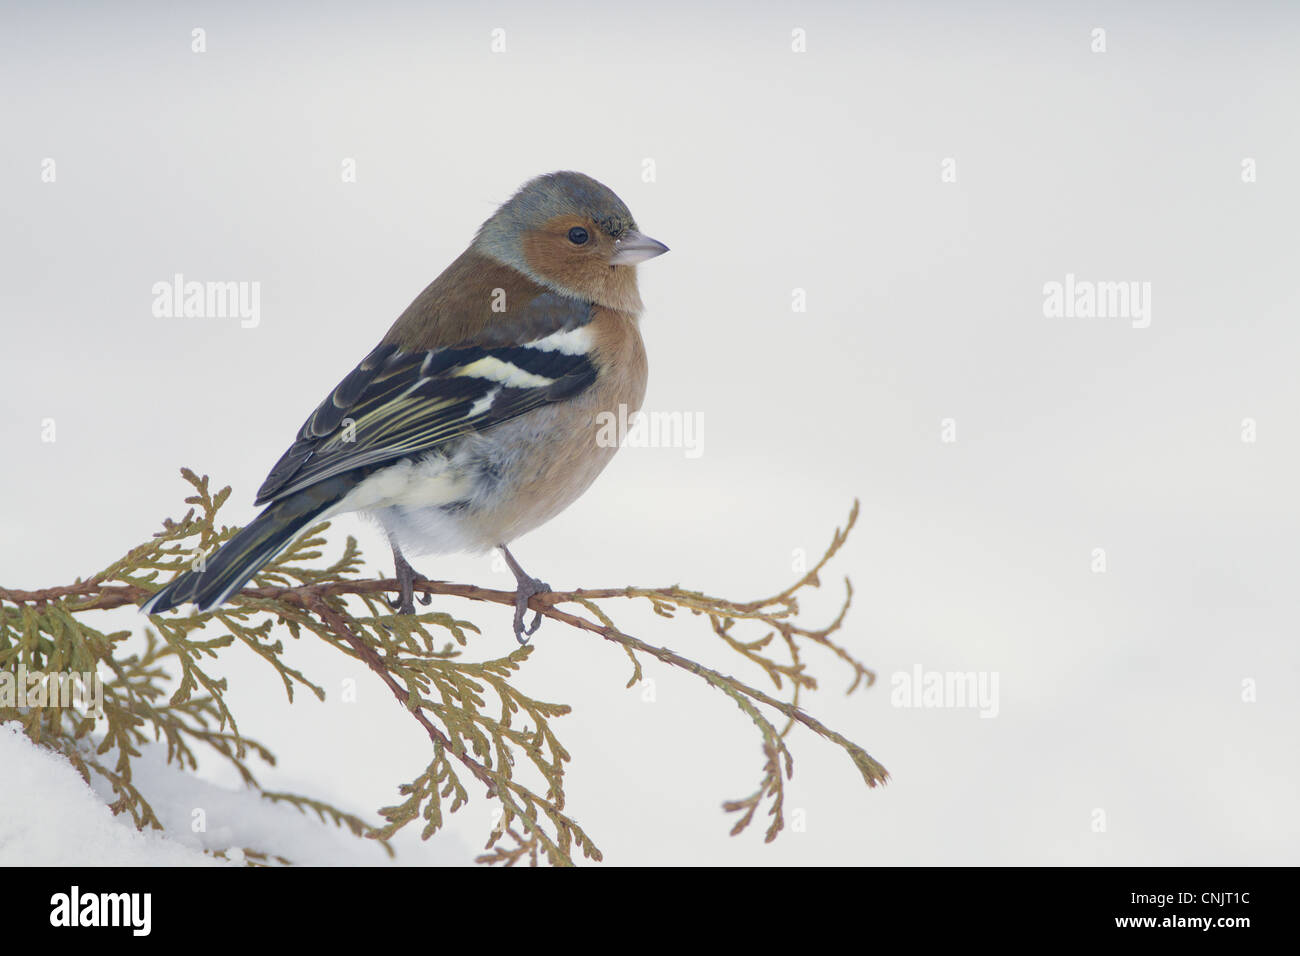 Chaffinch (Fringilla coelebs) adult male, perched on conifer in snow covered garden, Chirnside, Berwickshire, Scotland, - Stock Image